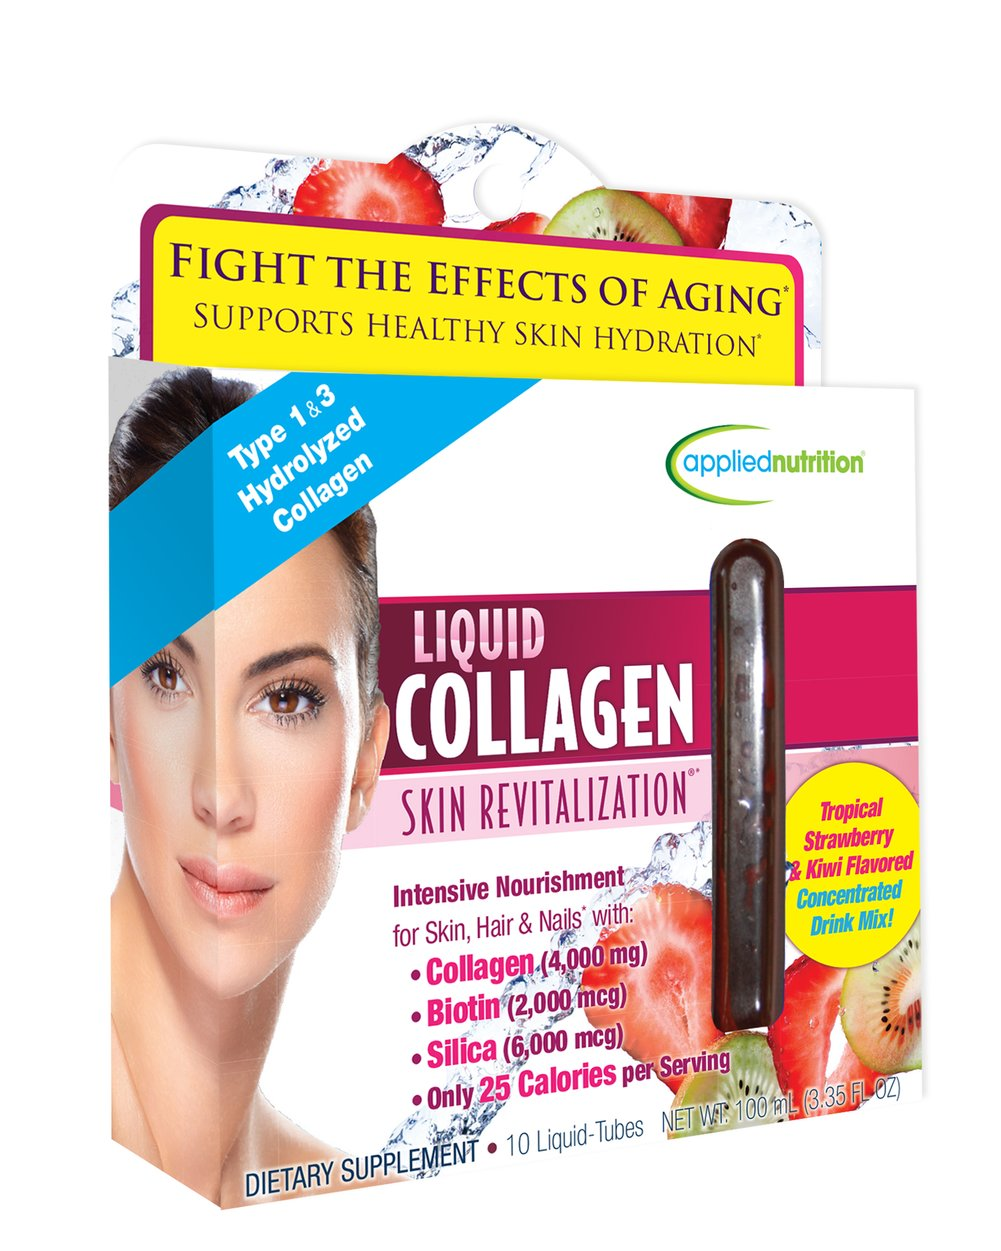 Liquid Collagen 4,000 mg Skin Revitalization™ <p><strong>From the Manufacturer''s Label:</strong></p><p><strong>Intensive Nourishment for Skin, Hair  & Nails</strong> with:</p><p>- Collagen (4,000 mg)</p><p>- Biotin (2,000 mcg)</p><p>- Silica (6,000 mcg)</p><p>- Vitamin A,C & E</p><p>Strawberry & Kiwi Flavored Concentrated Drink Mix</p><p>Collagen may